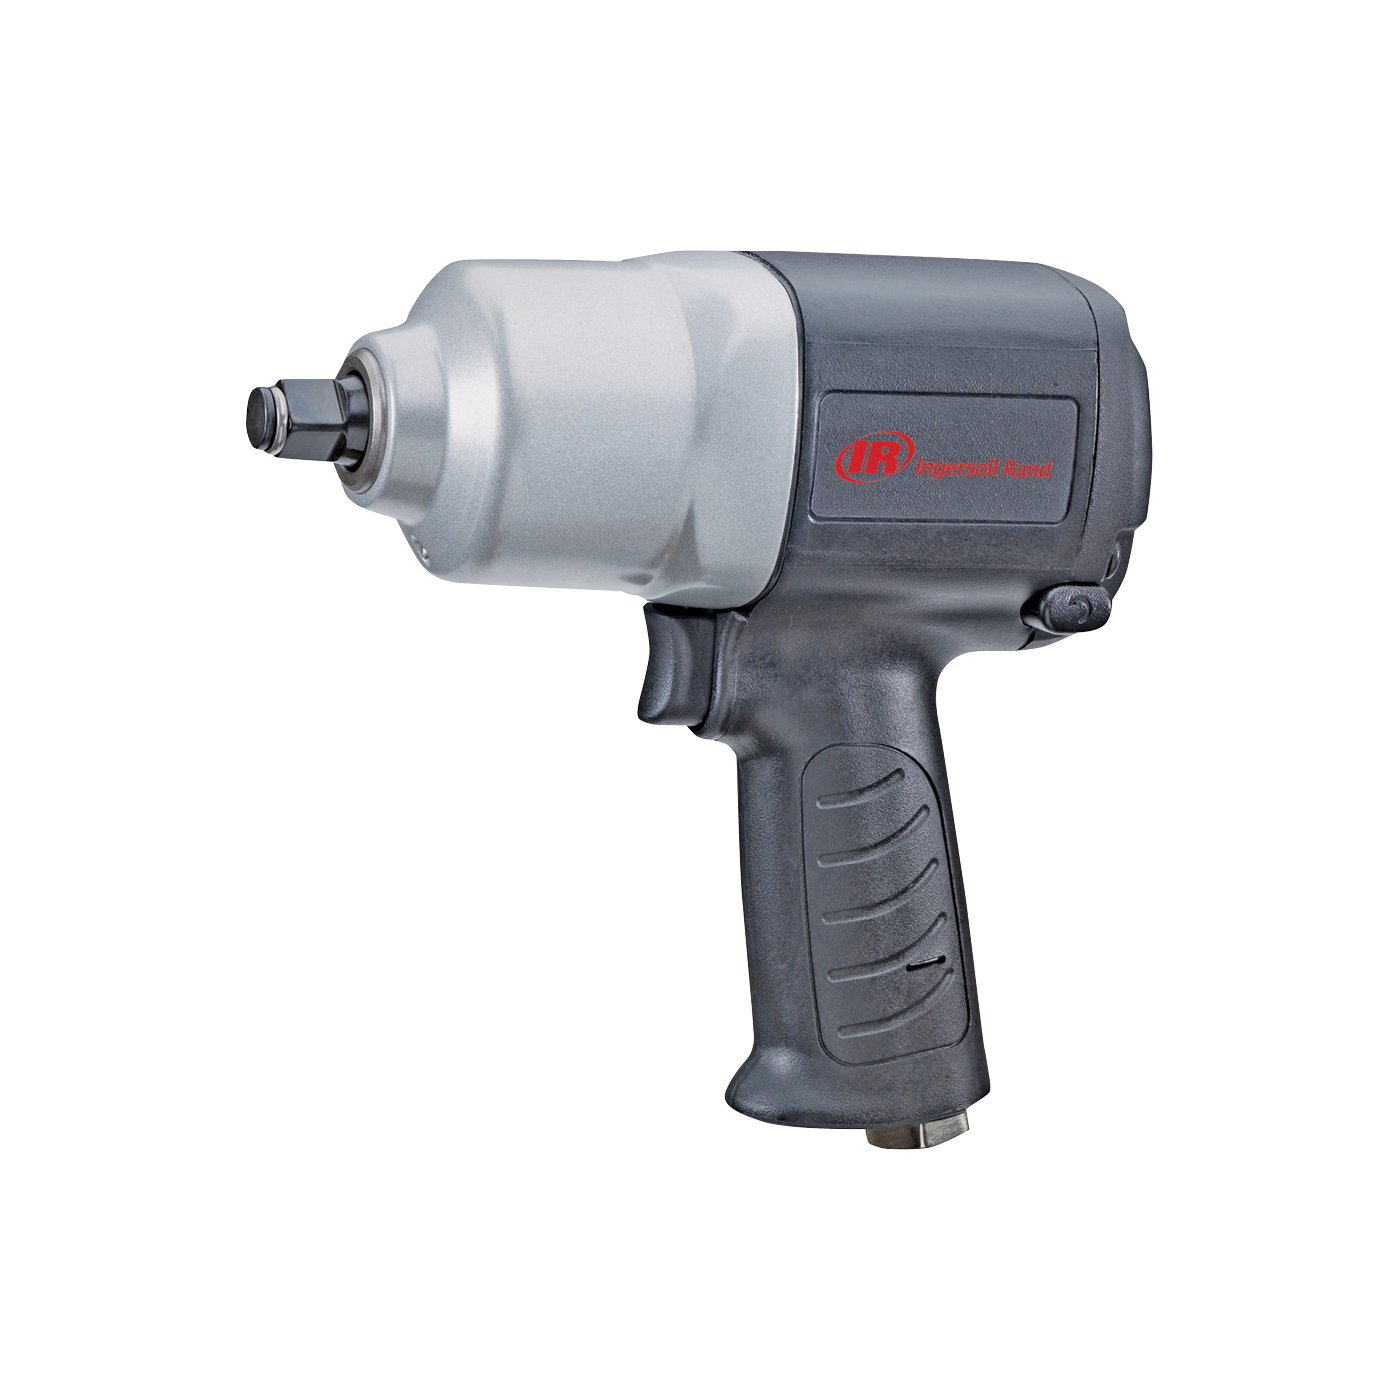 Picture of Ingersoll Rand 2100G Composite Air Impact Wrench, 1/2 in Drive, 550 ft-lb, 9500 rpm Speed